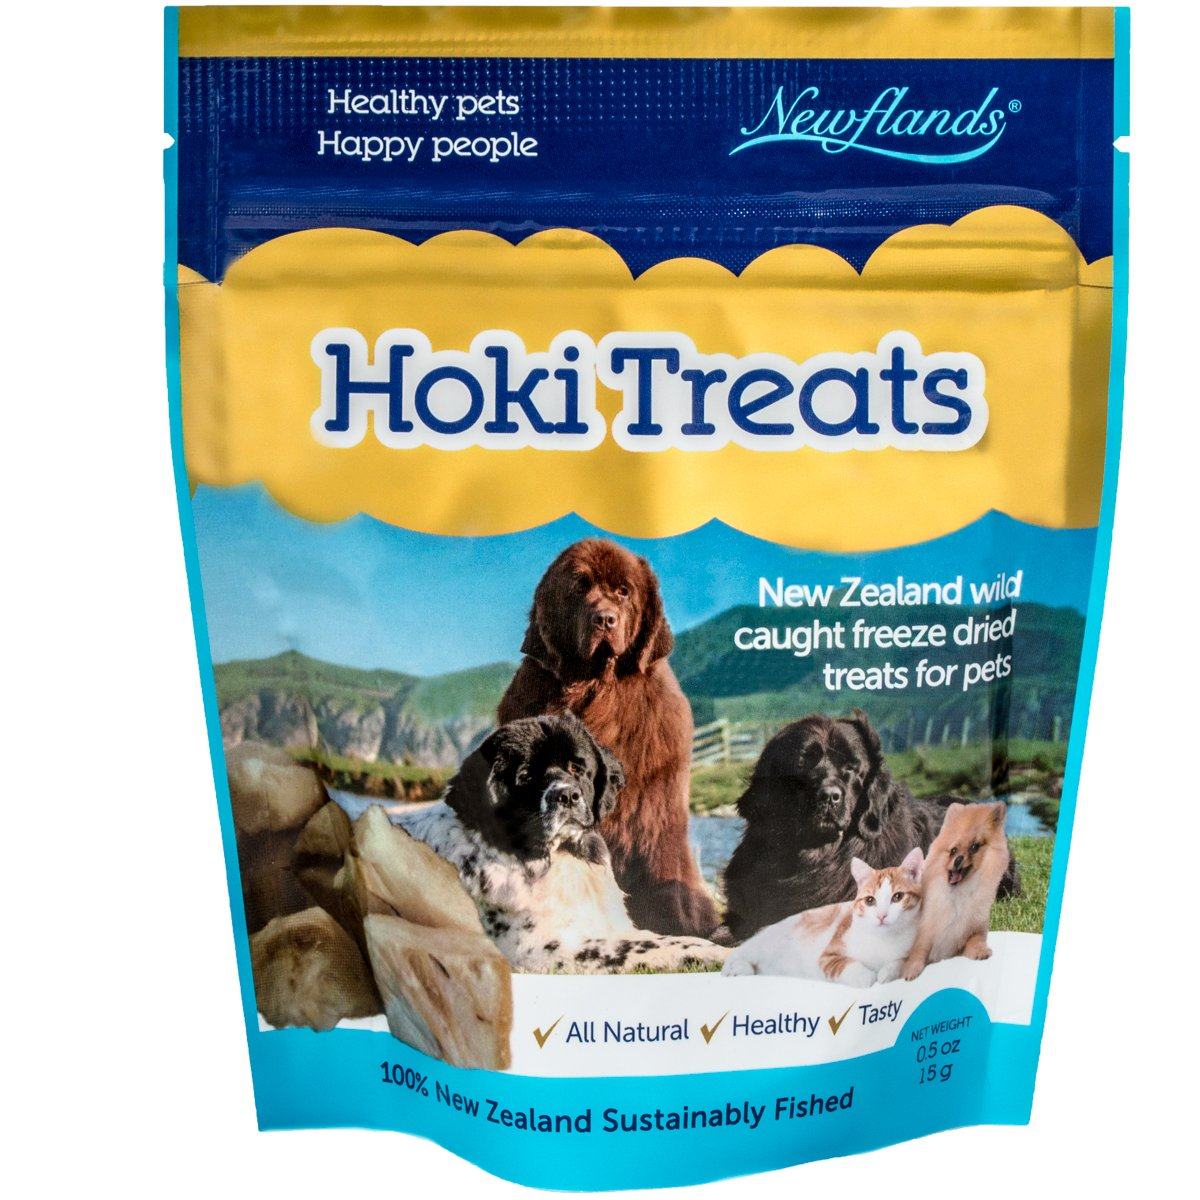 Newflands Hoki Premium Pet Treats, 100% Natural Food Supplement For Dogs and Cats, 0.53oz (15gm) by Newflands